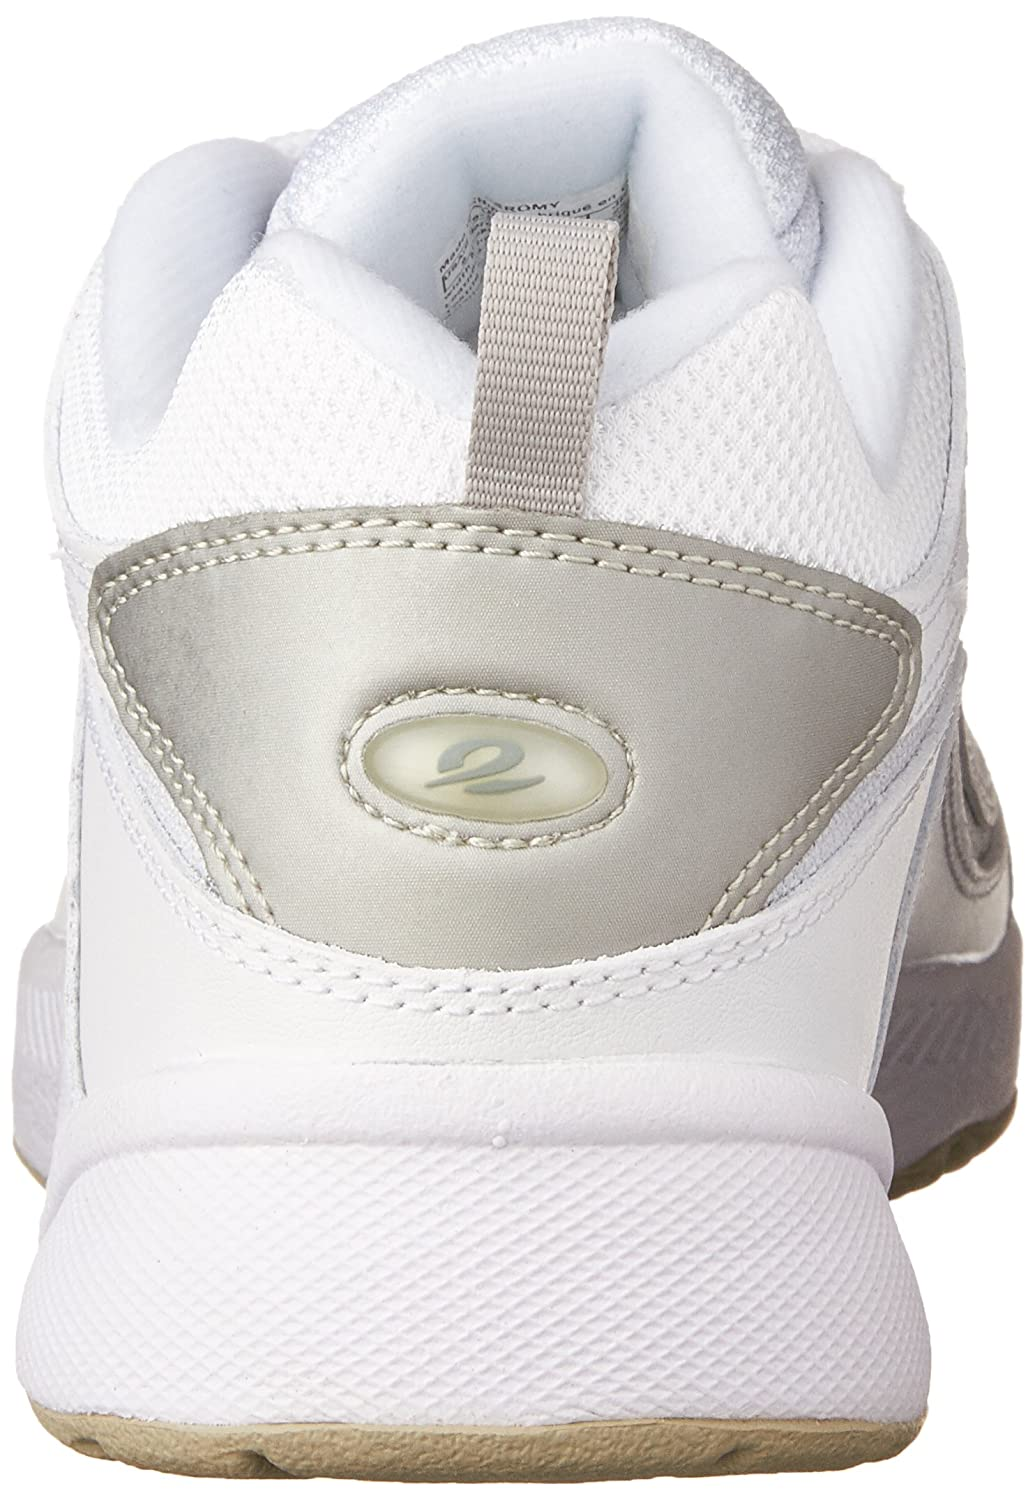 Easy Spirit Women's Romy Walking Shoe B000F608HE 10 B(M) US|White/ Light Grey